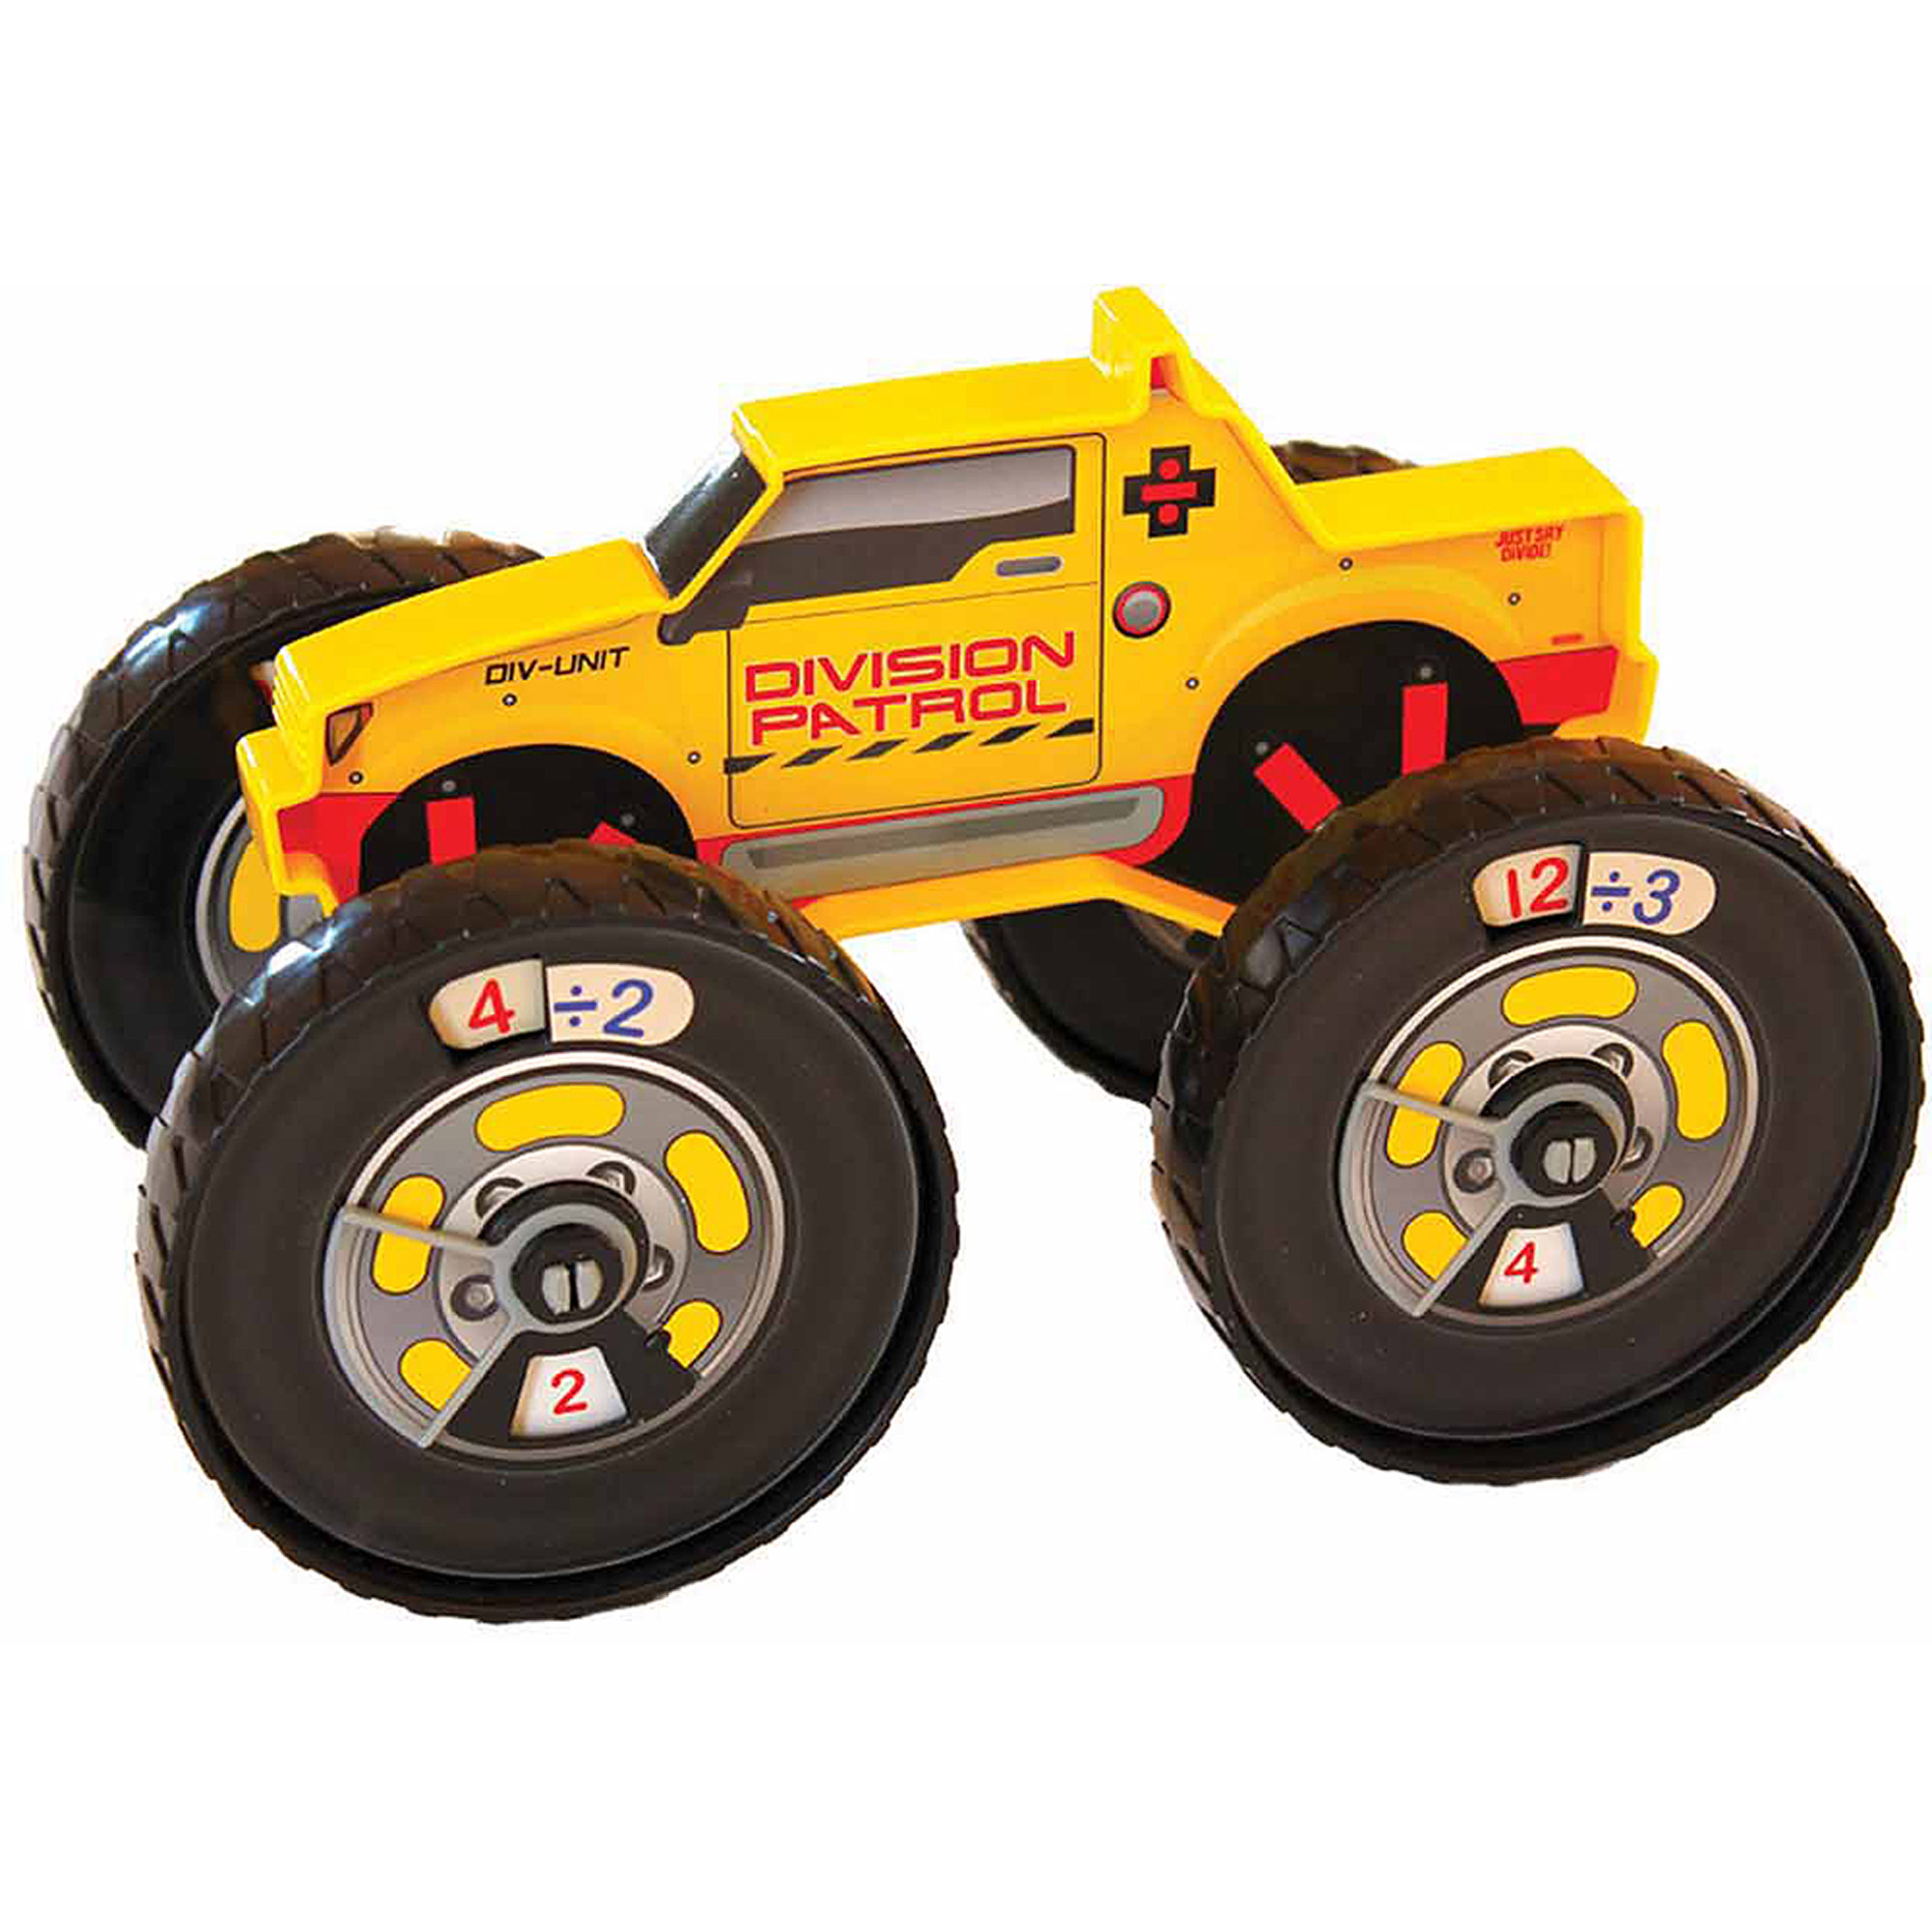 Junior Learning Division Patrol, A Hands-On Toy for Teaching Division